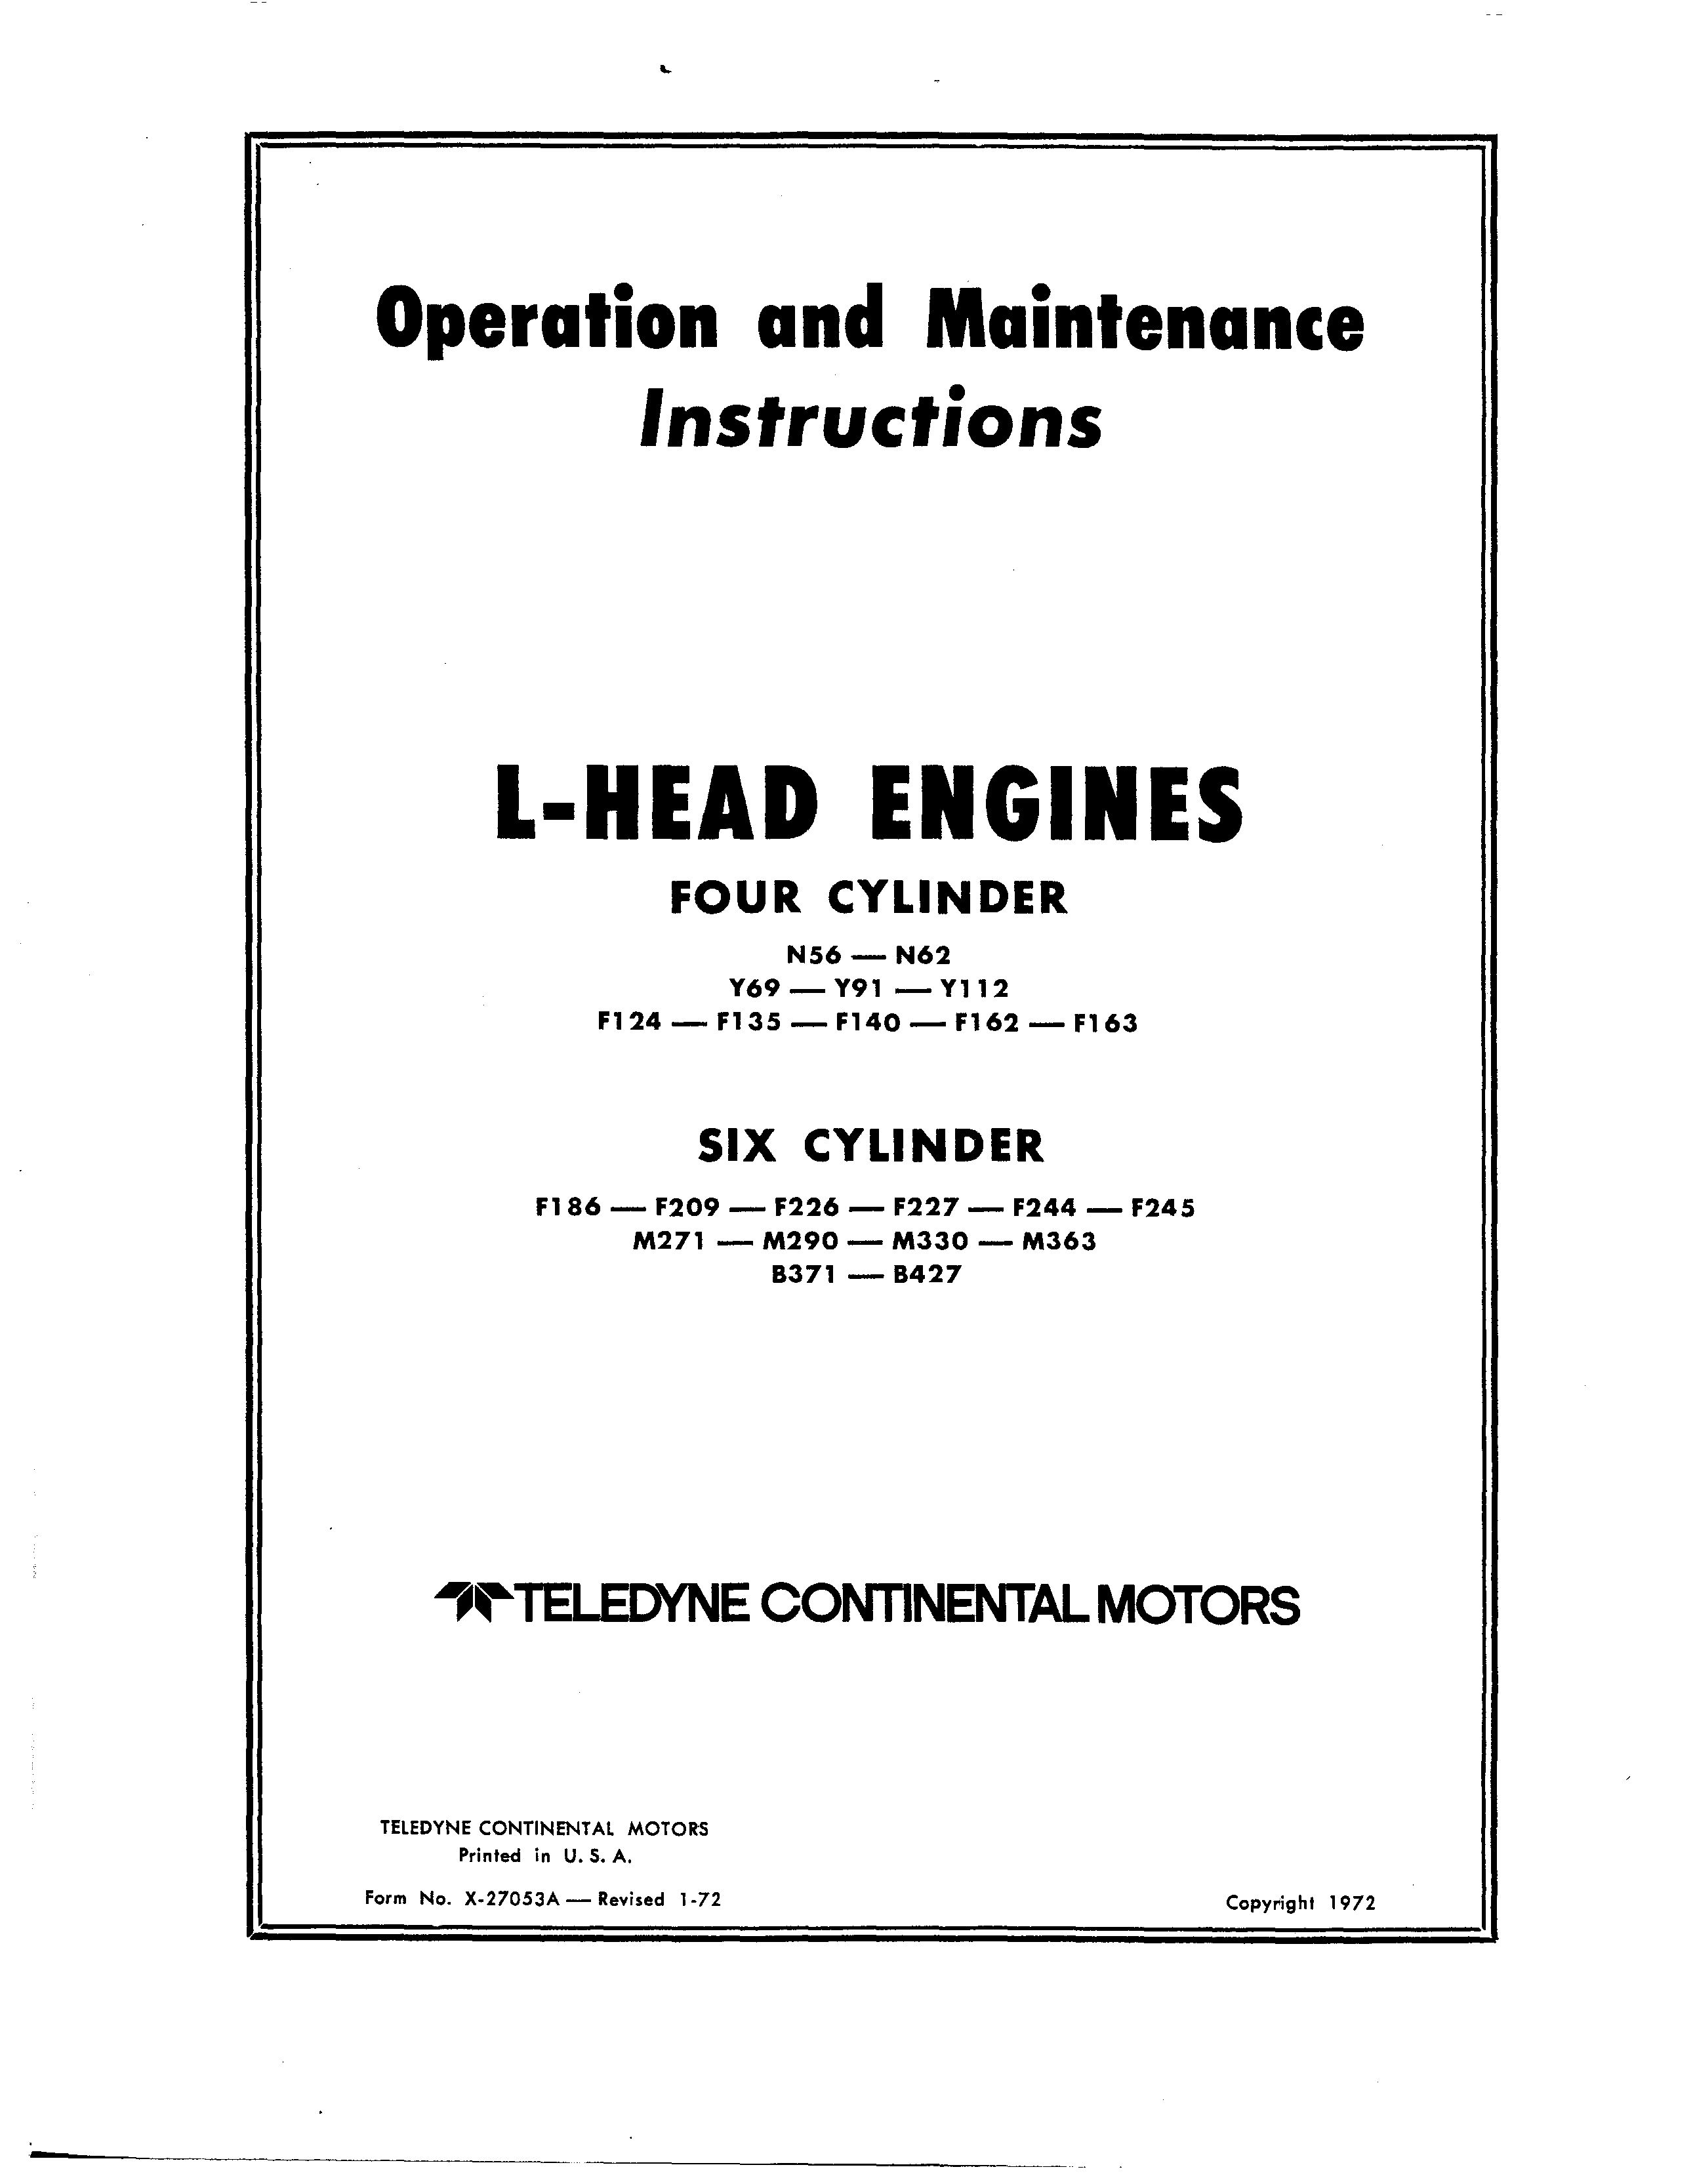 Continental L Head Engines Overhaul Manual For 4 And 5 Cylinder In 2020 Repair And Maintenance Manual Operation And Maintenance